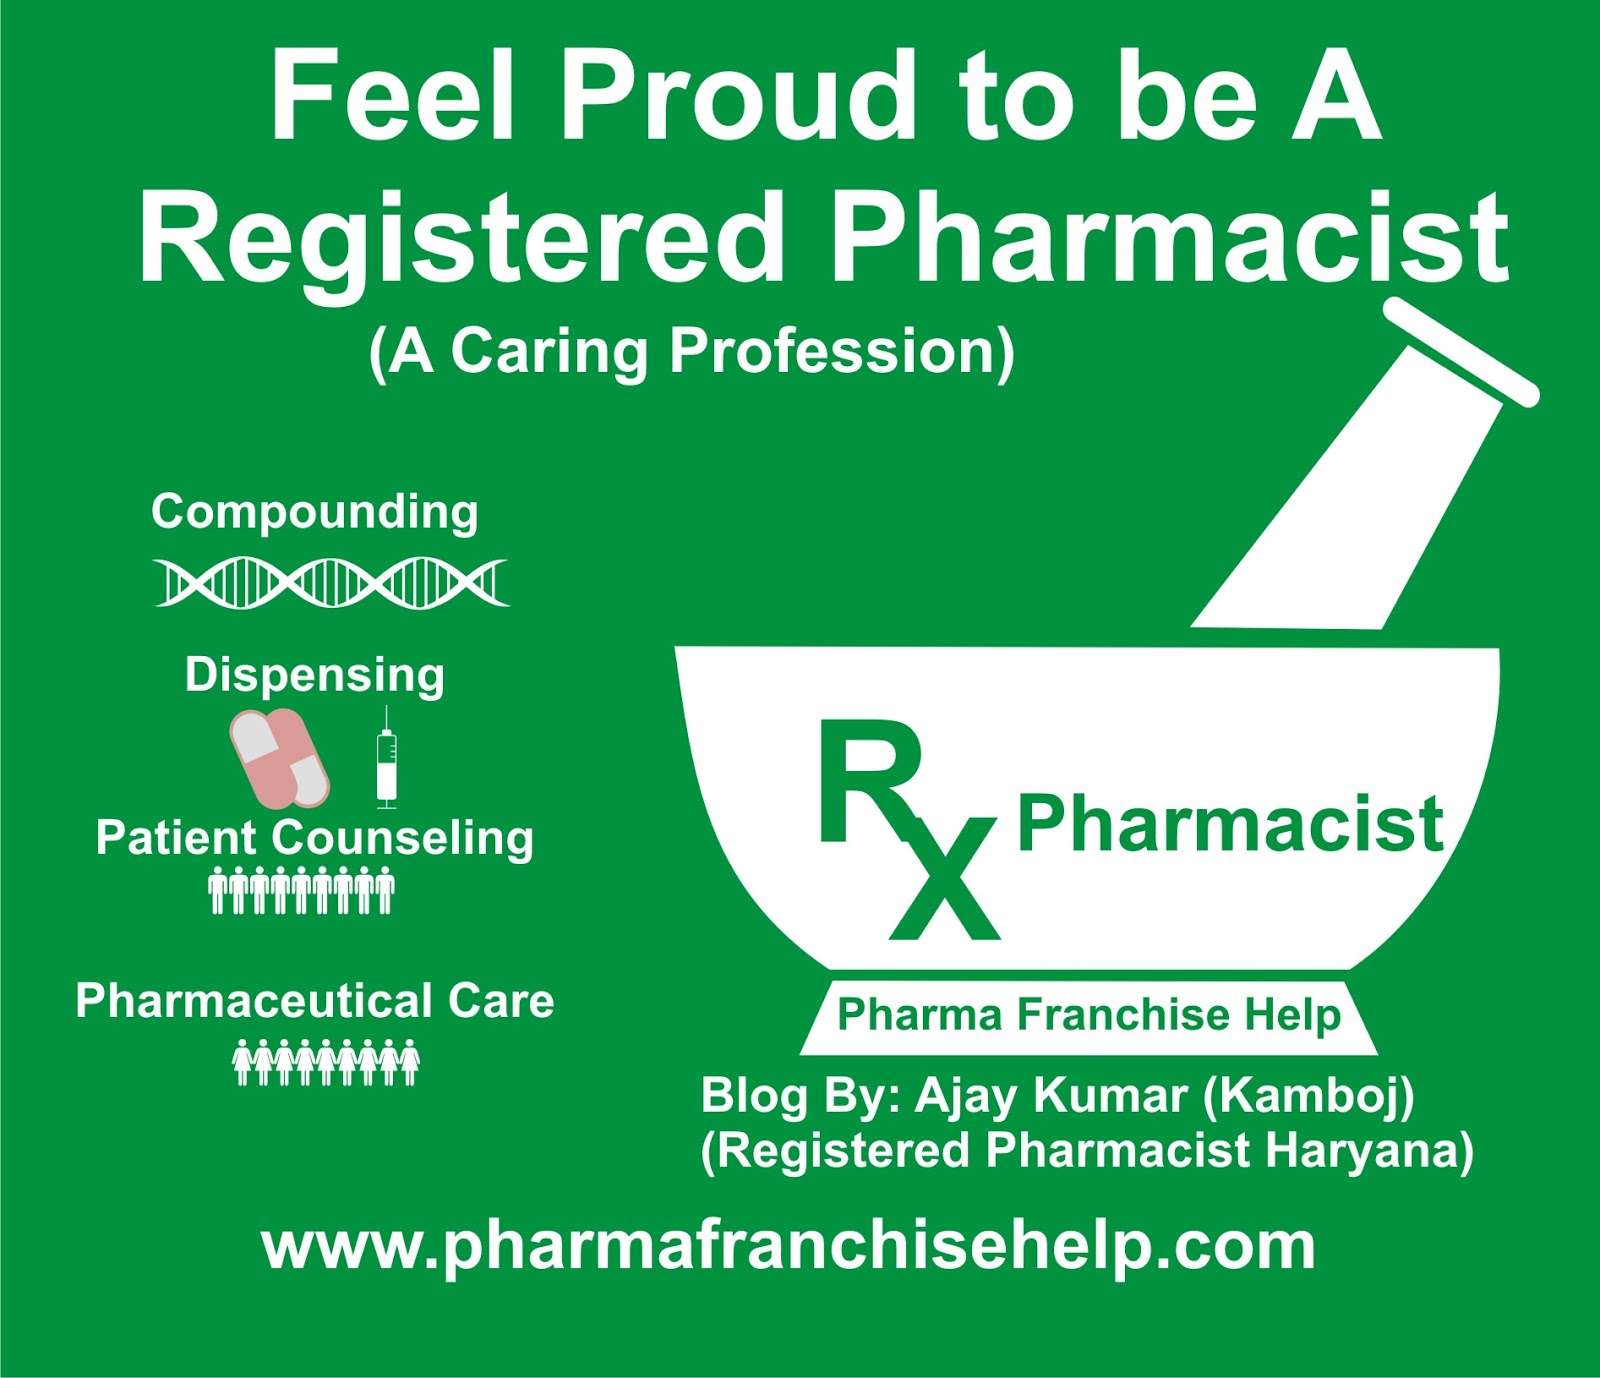 candidate should be diploma in pharmacybachelor in pharmadoctor in pharmacy to be eligible for applying as a pharmacist registration - Pharmacist Duties